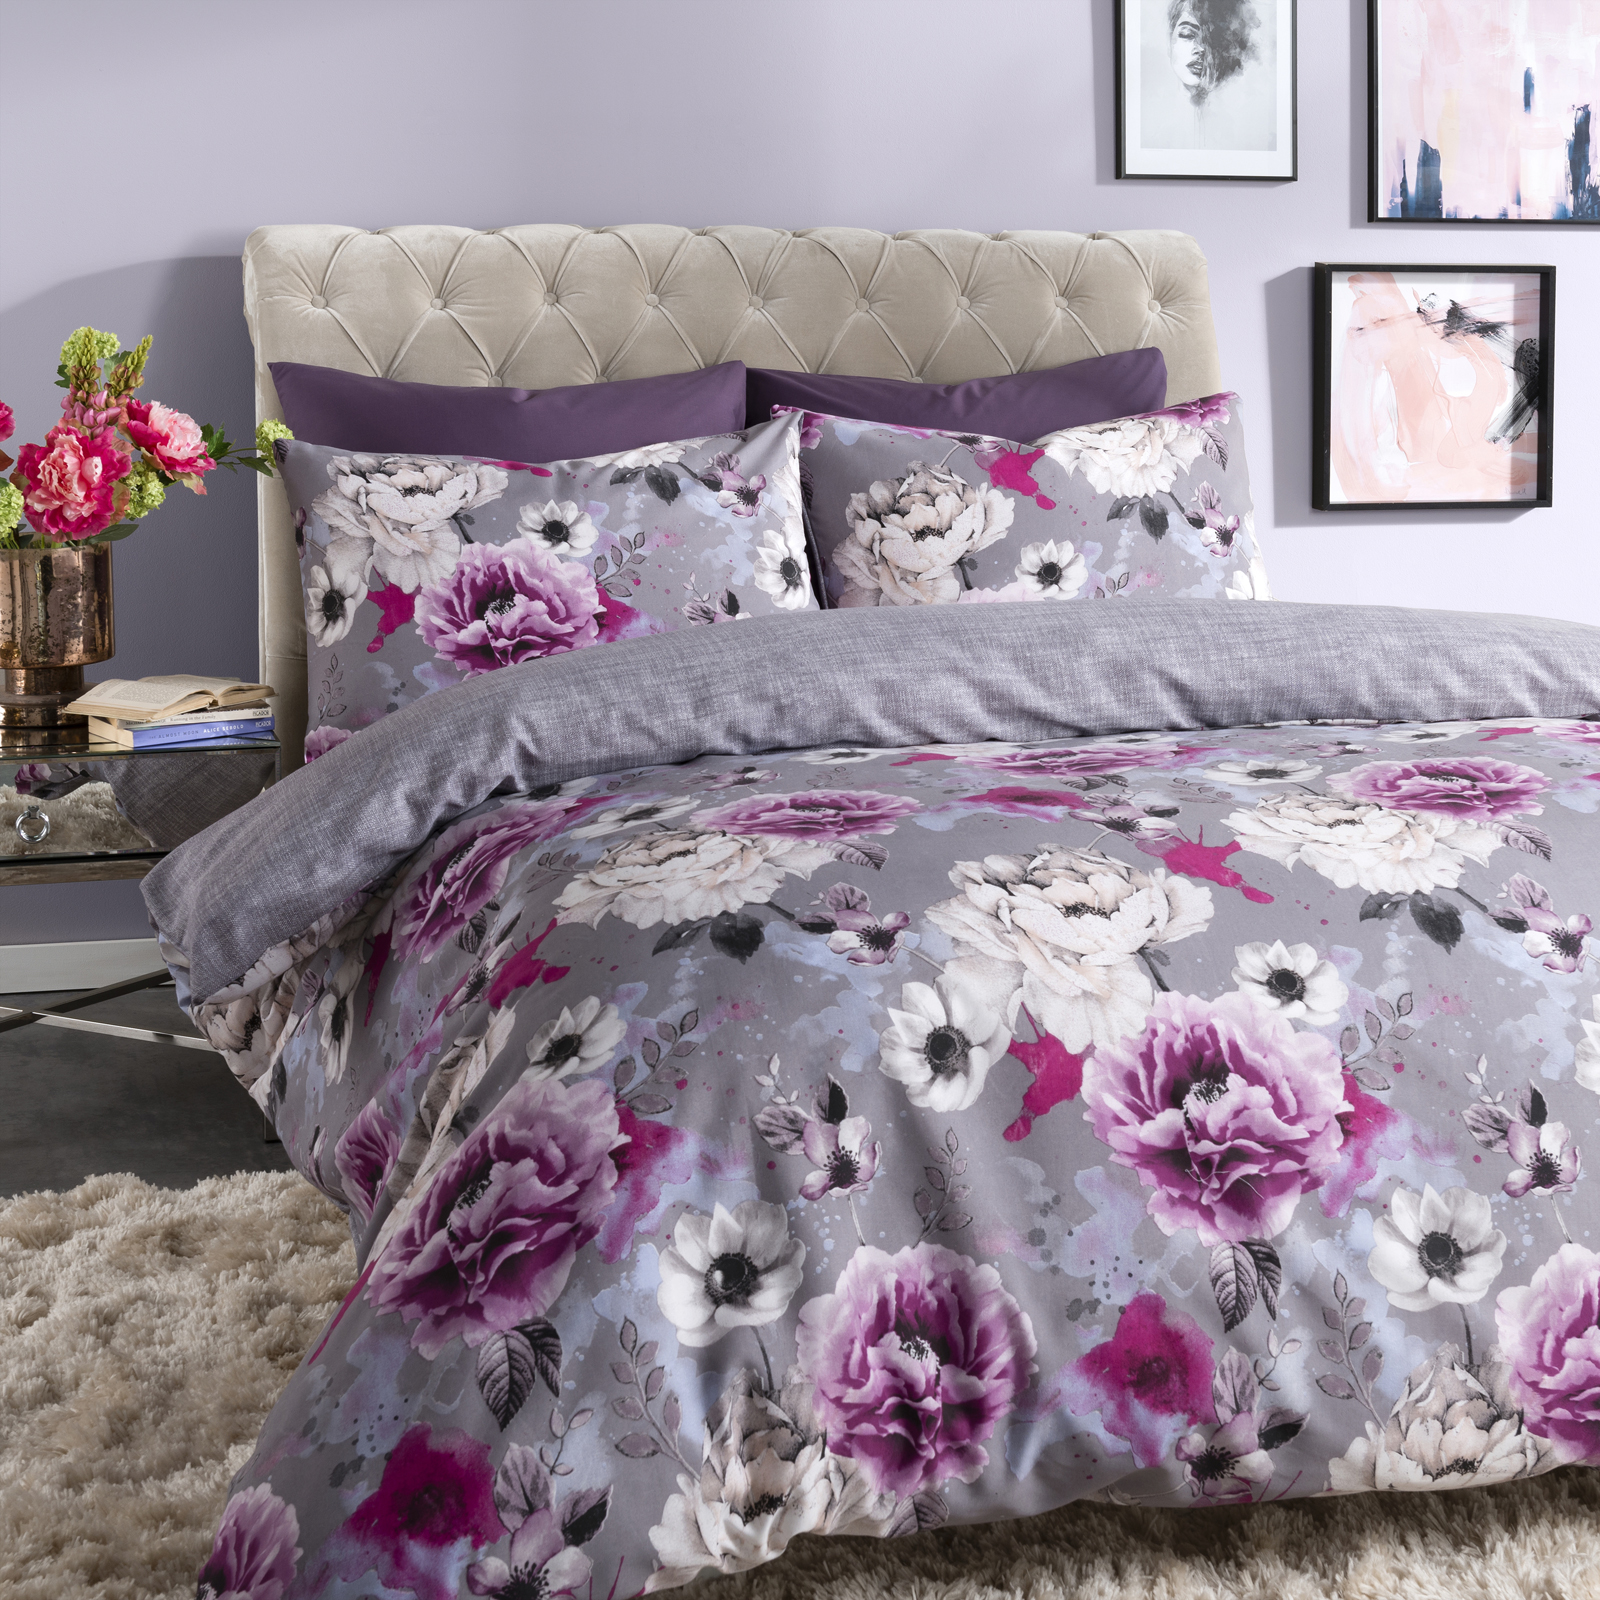 flat sheet item king bedding floral sets egyptian duvet cover size set queen cotton